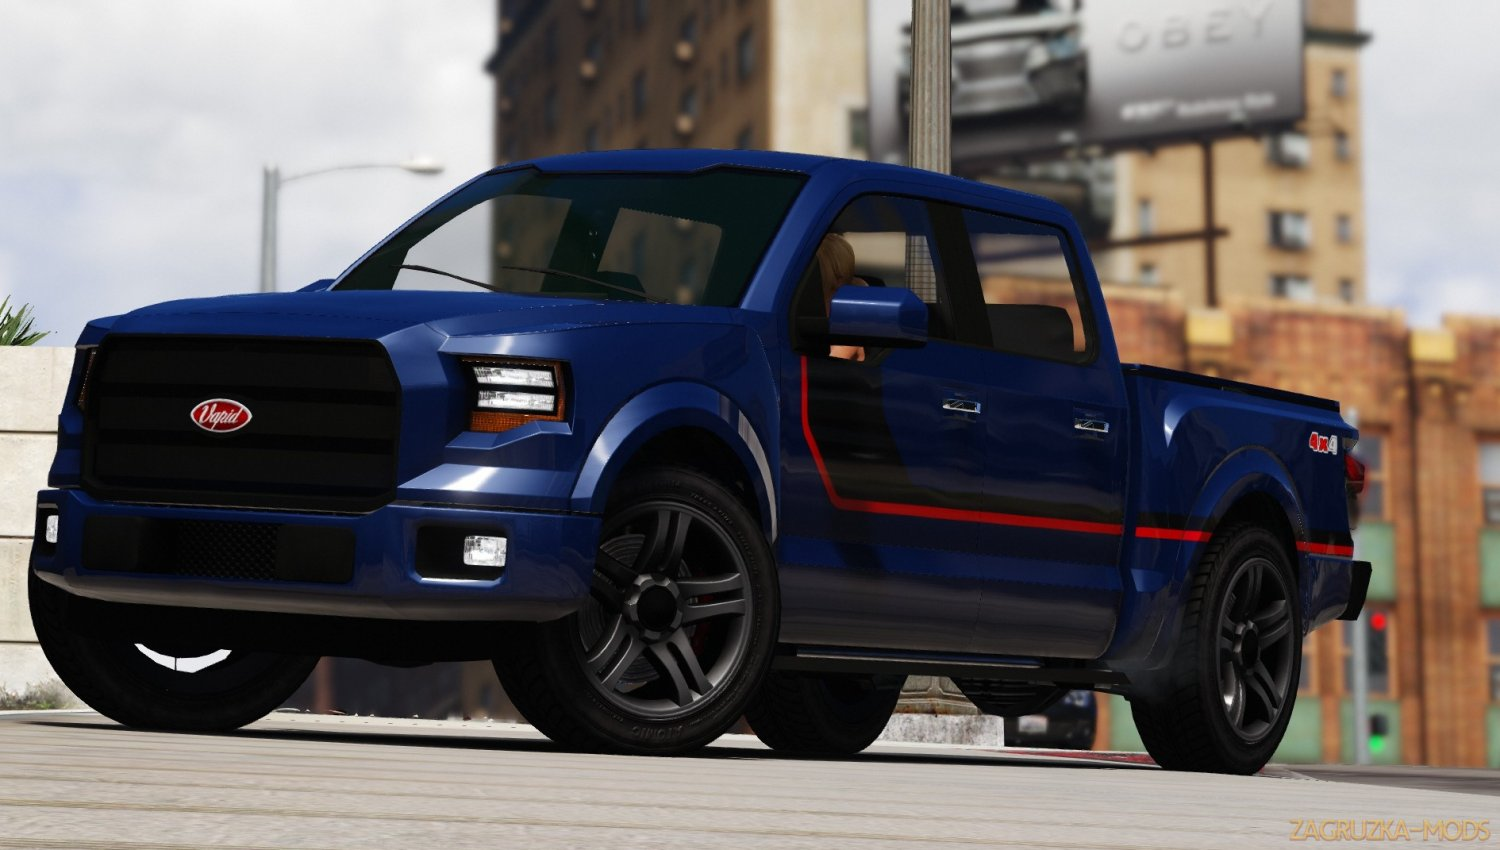 Vapid Caracara 4x4 v2.2 for GTA 5